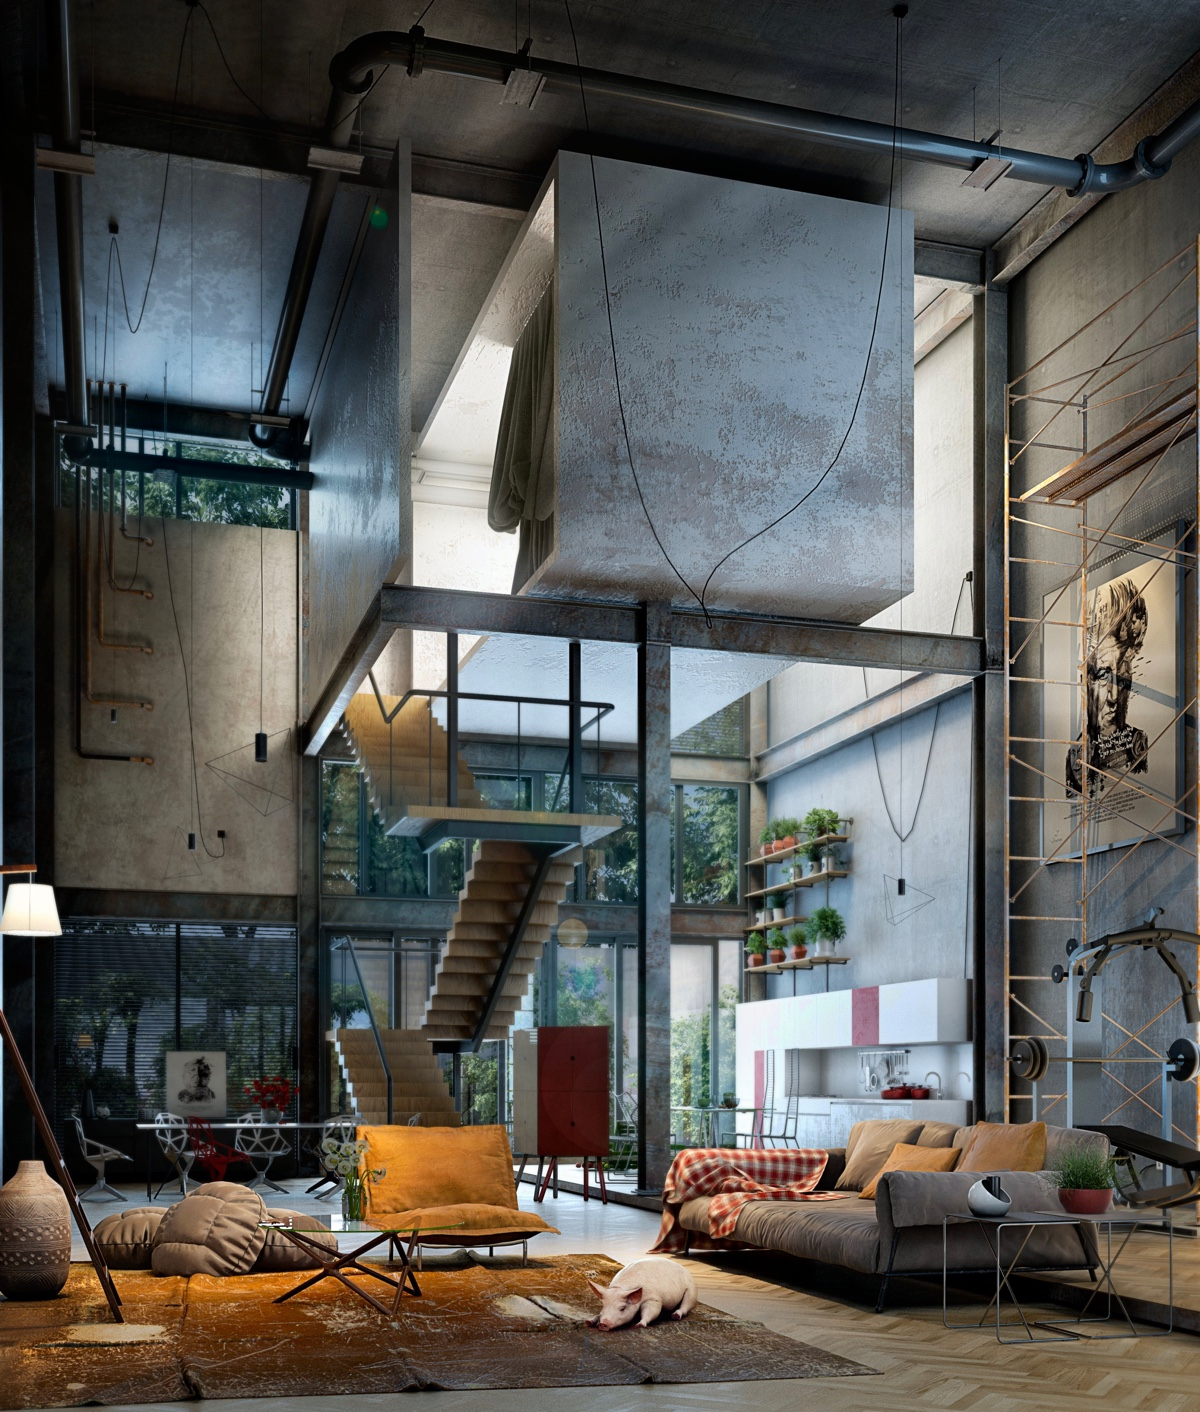 Loft Apartment: 40 Incredible Lofts That Push Boundaries